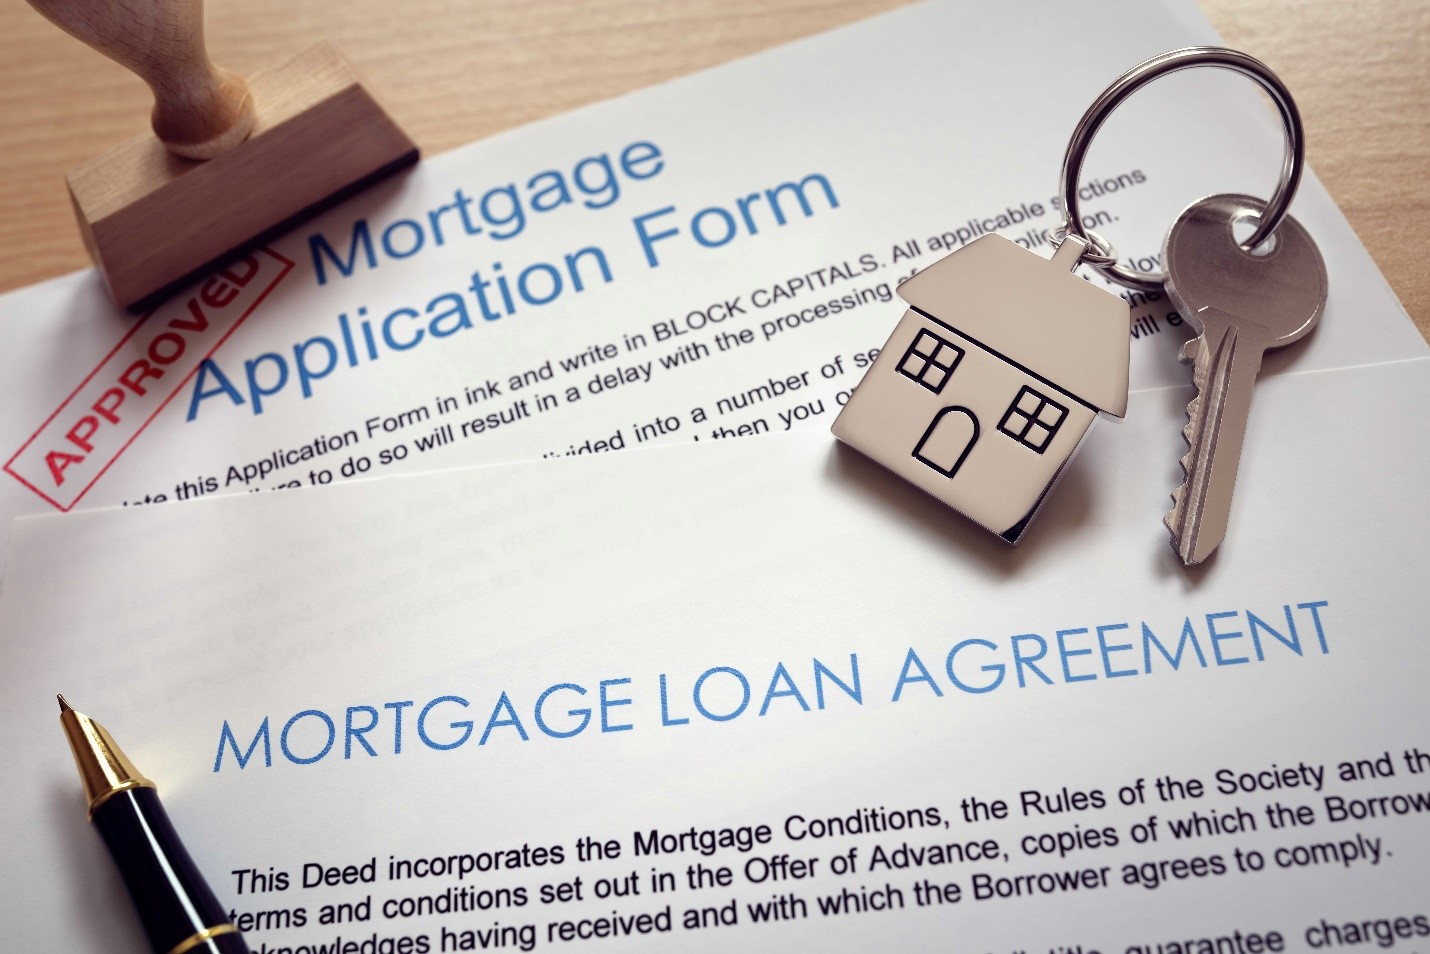 mortgage loan application and agreement form